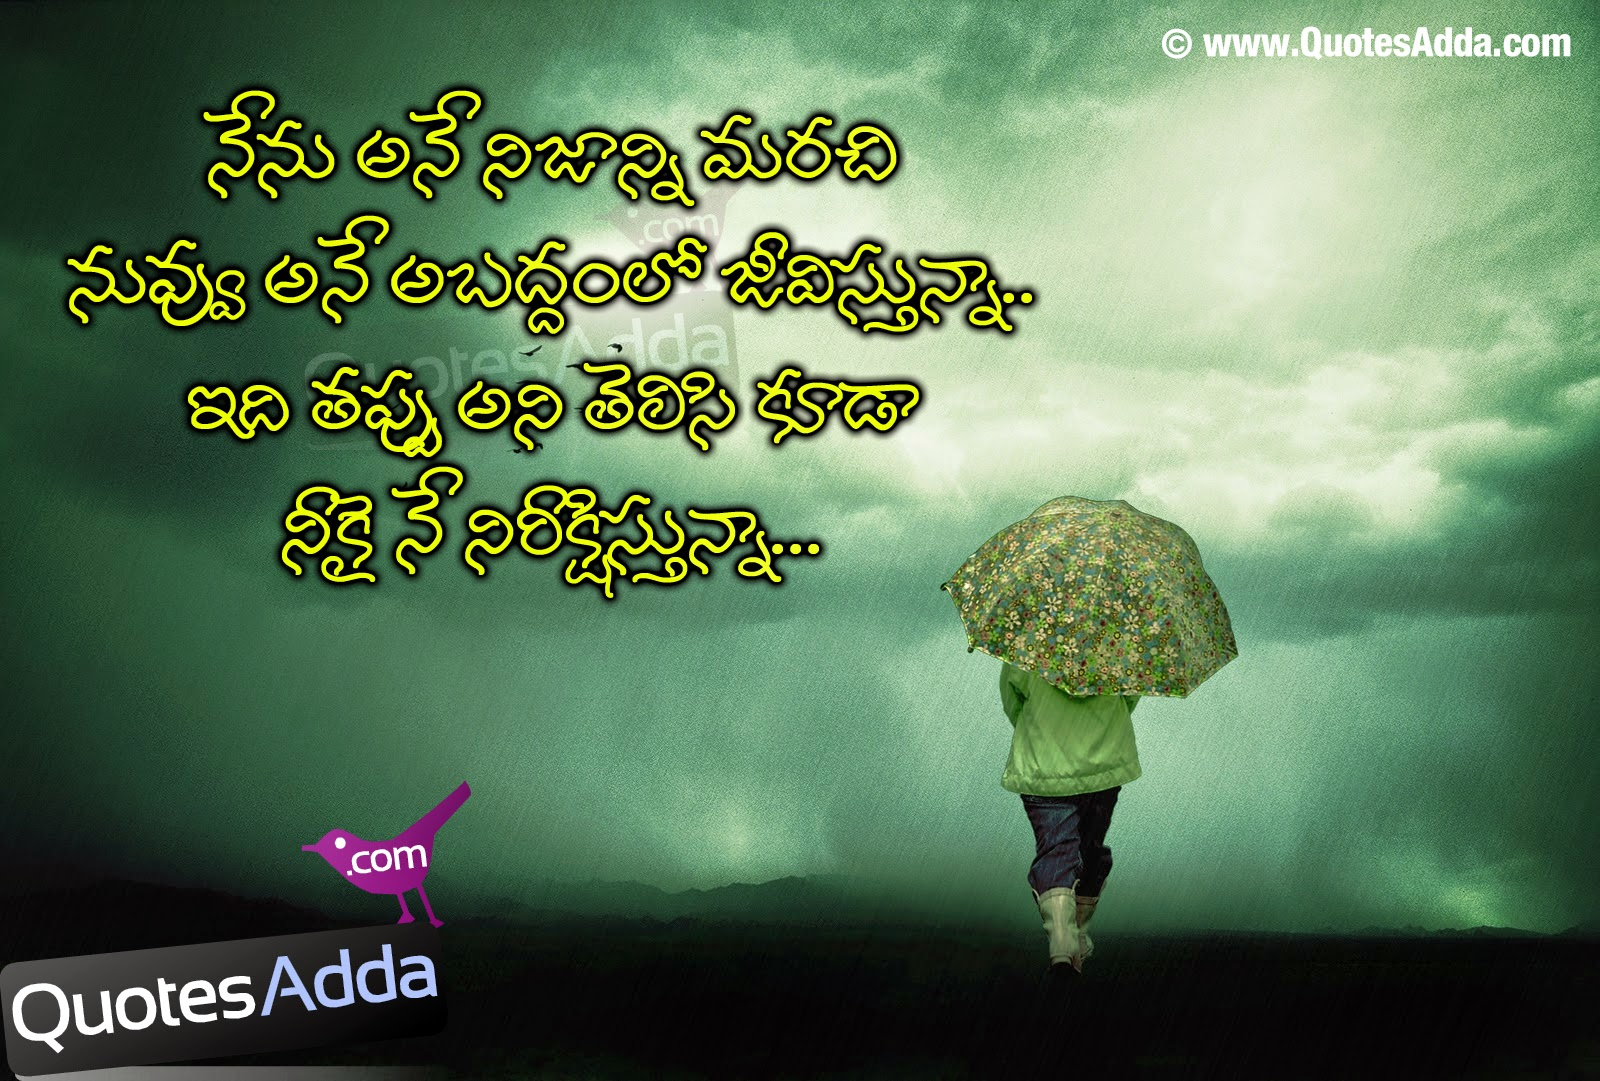 Emotional Love Quotes In Kannada